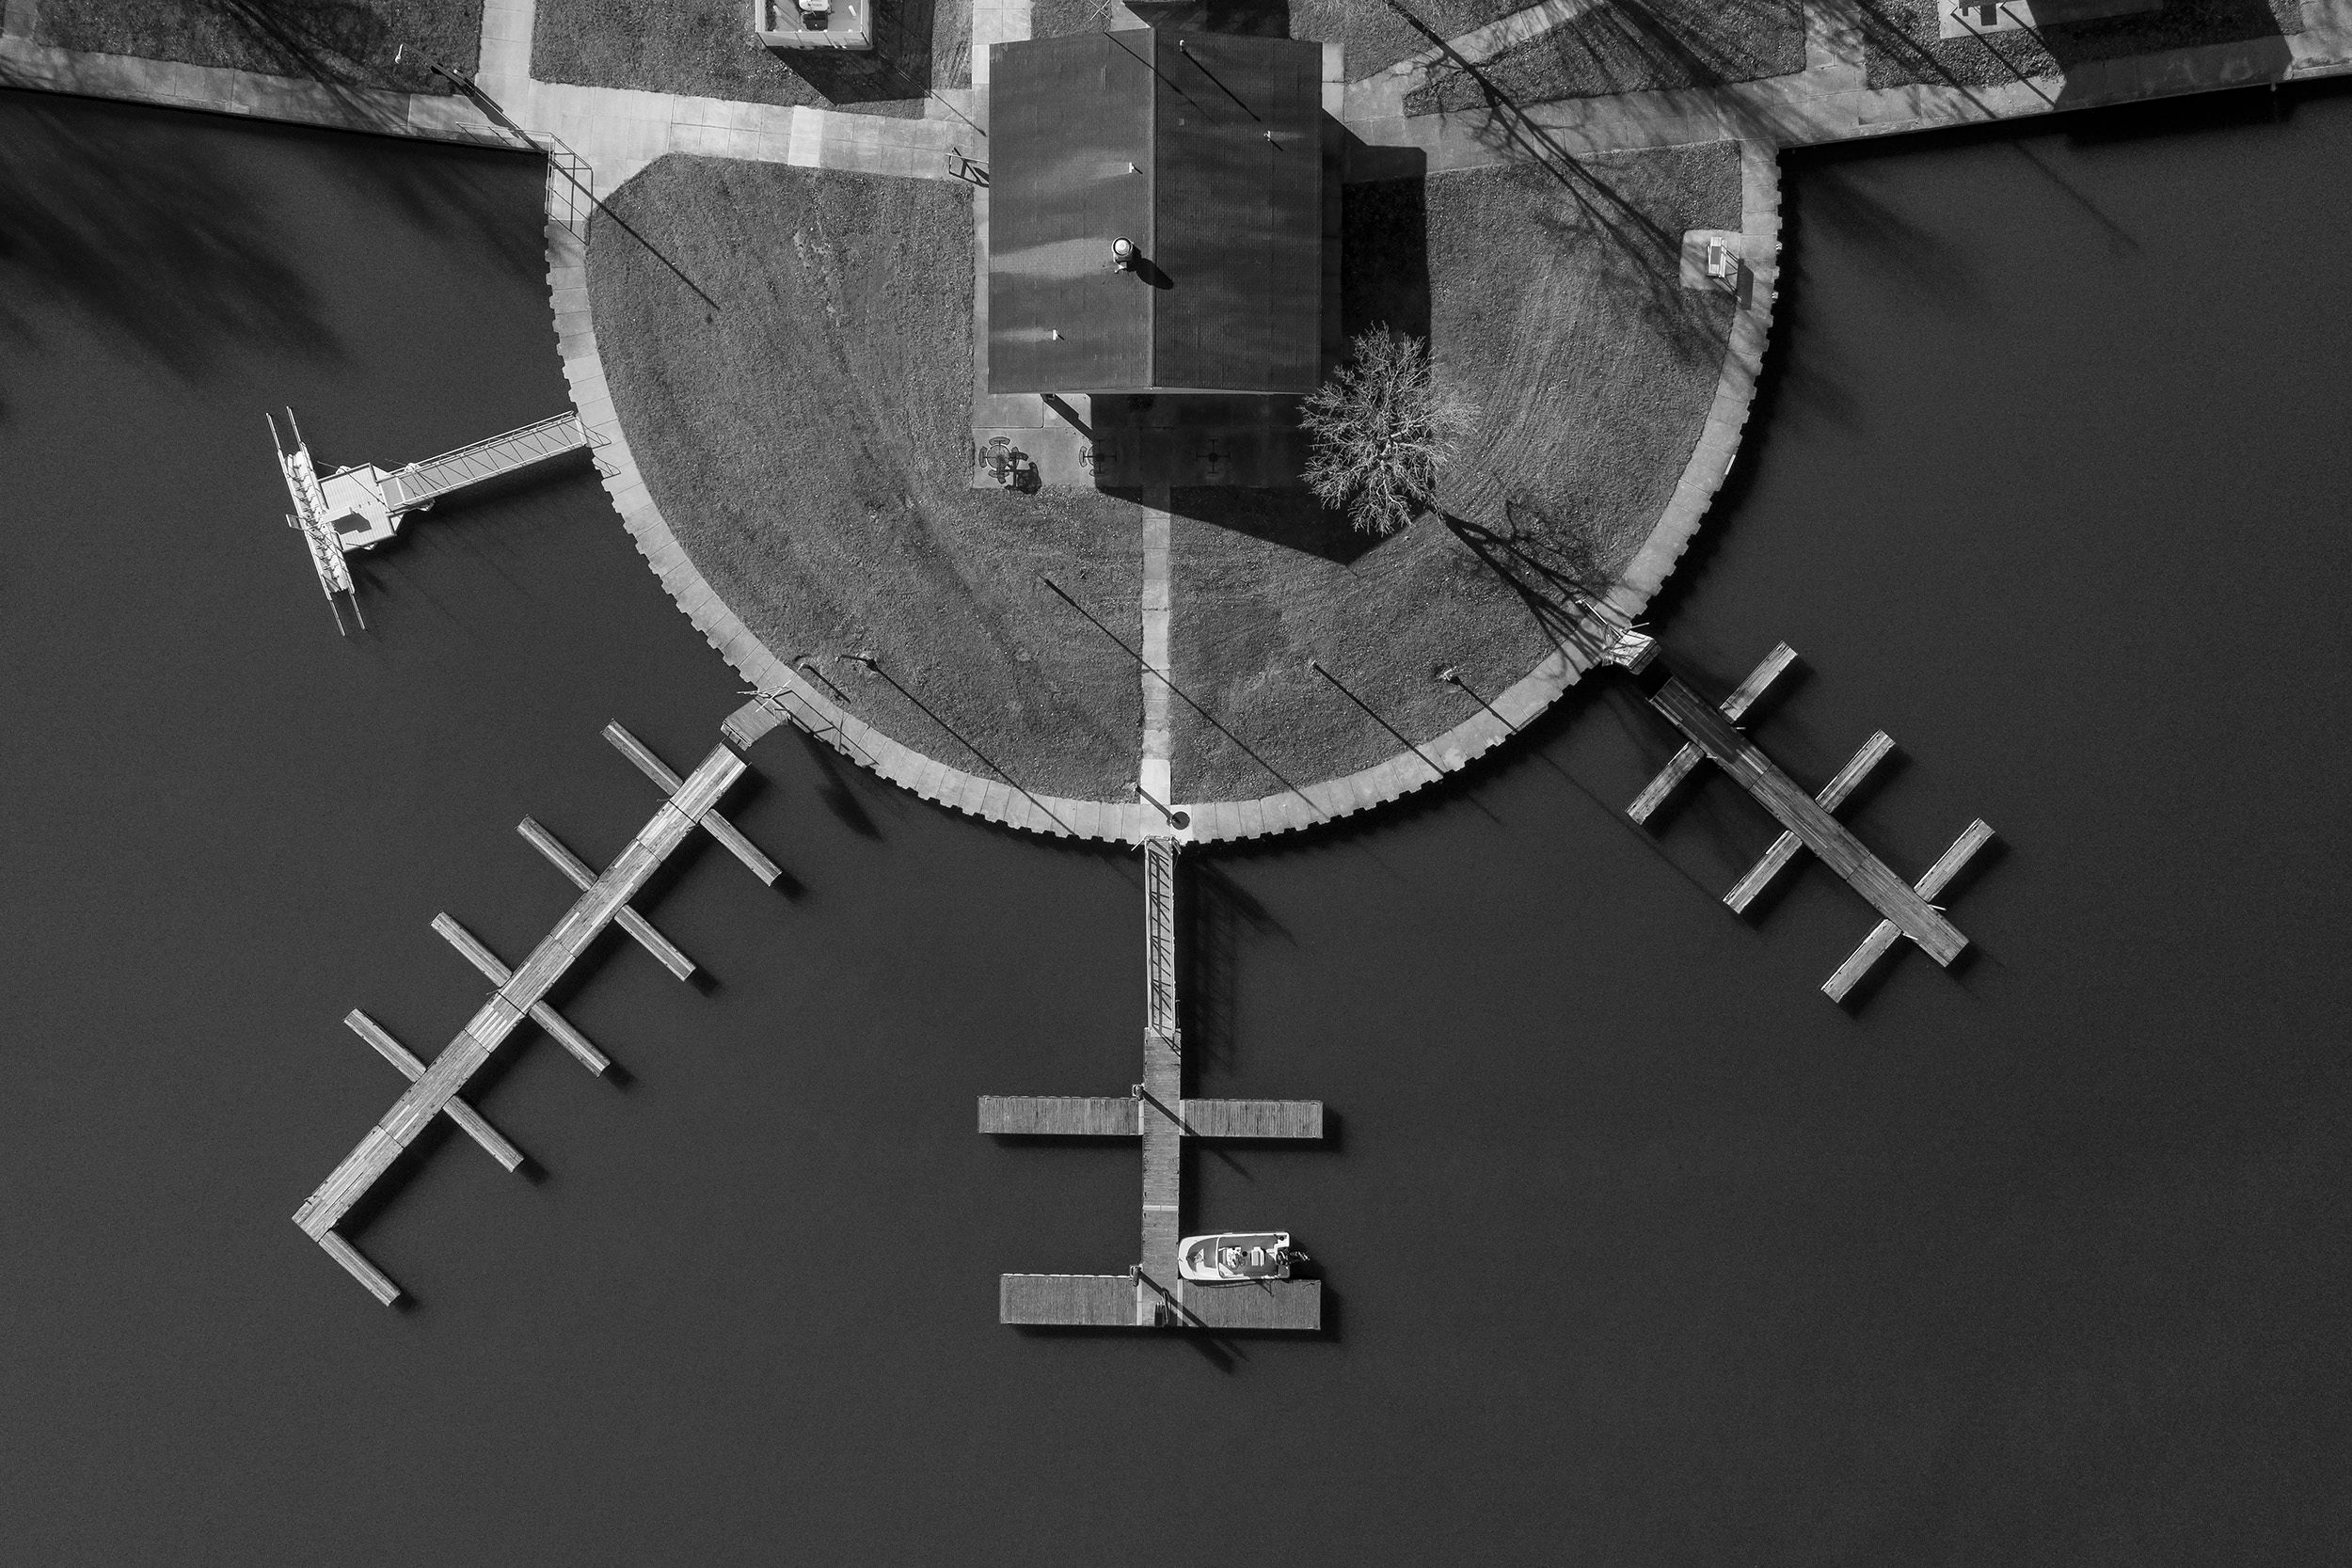 Aerial Drone photo of docks at State Park